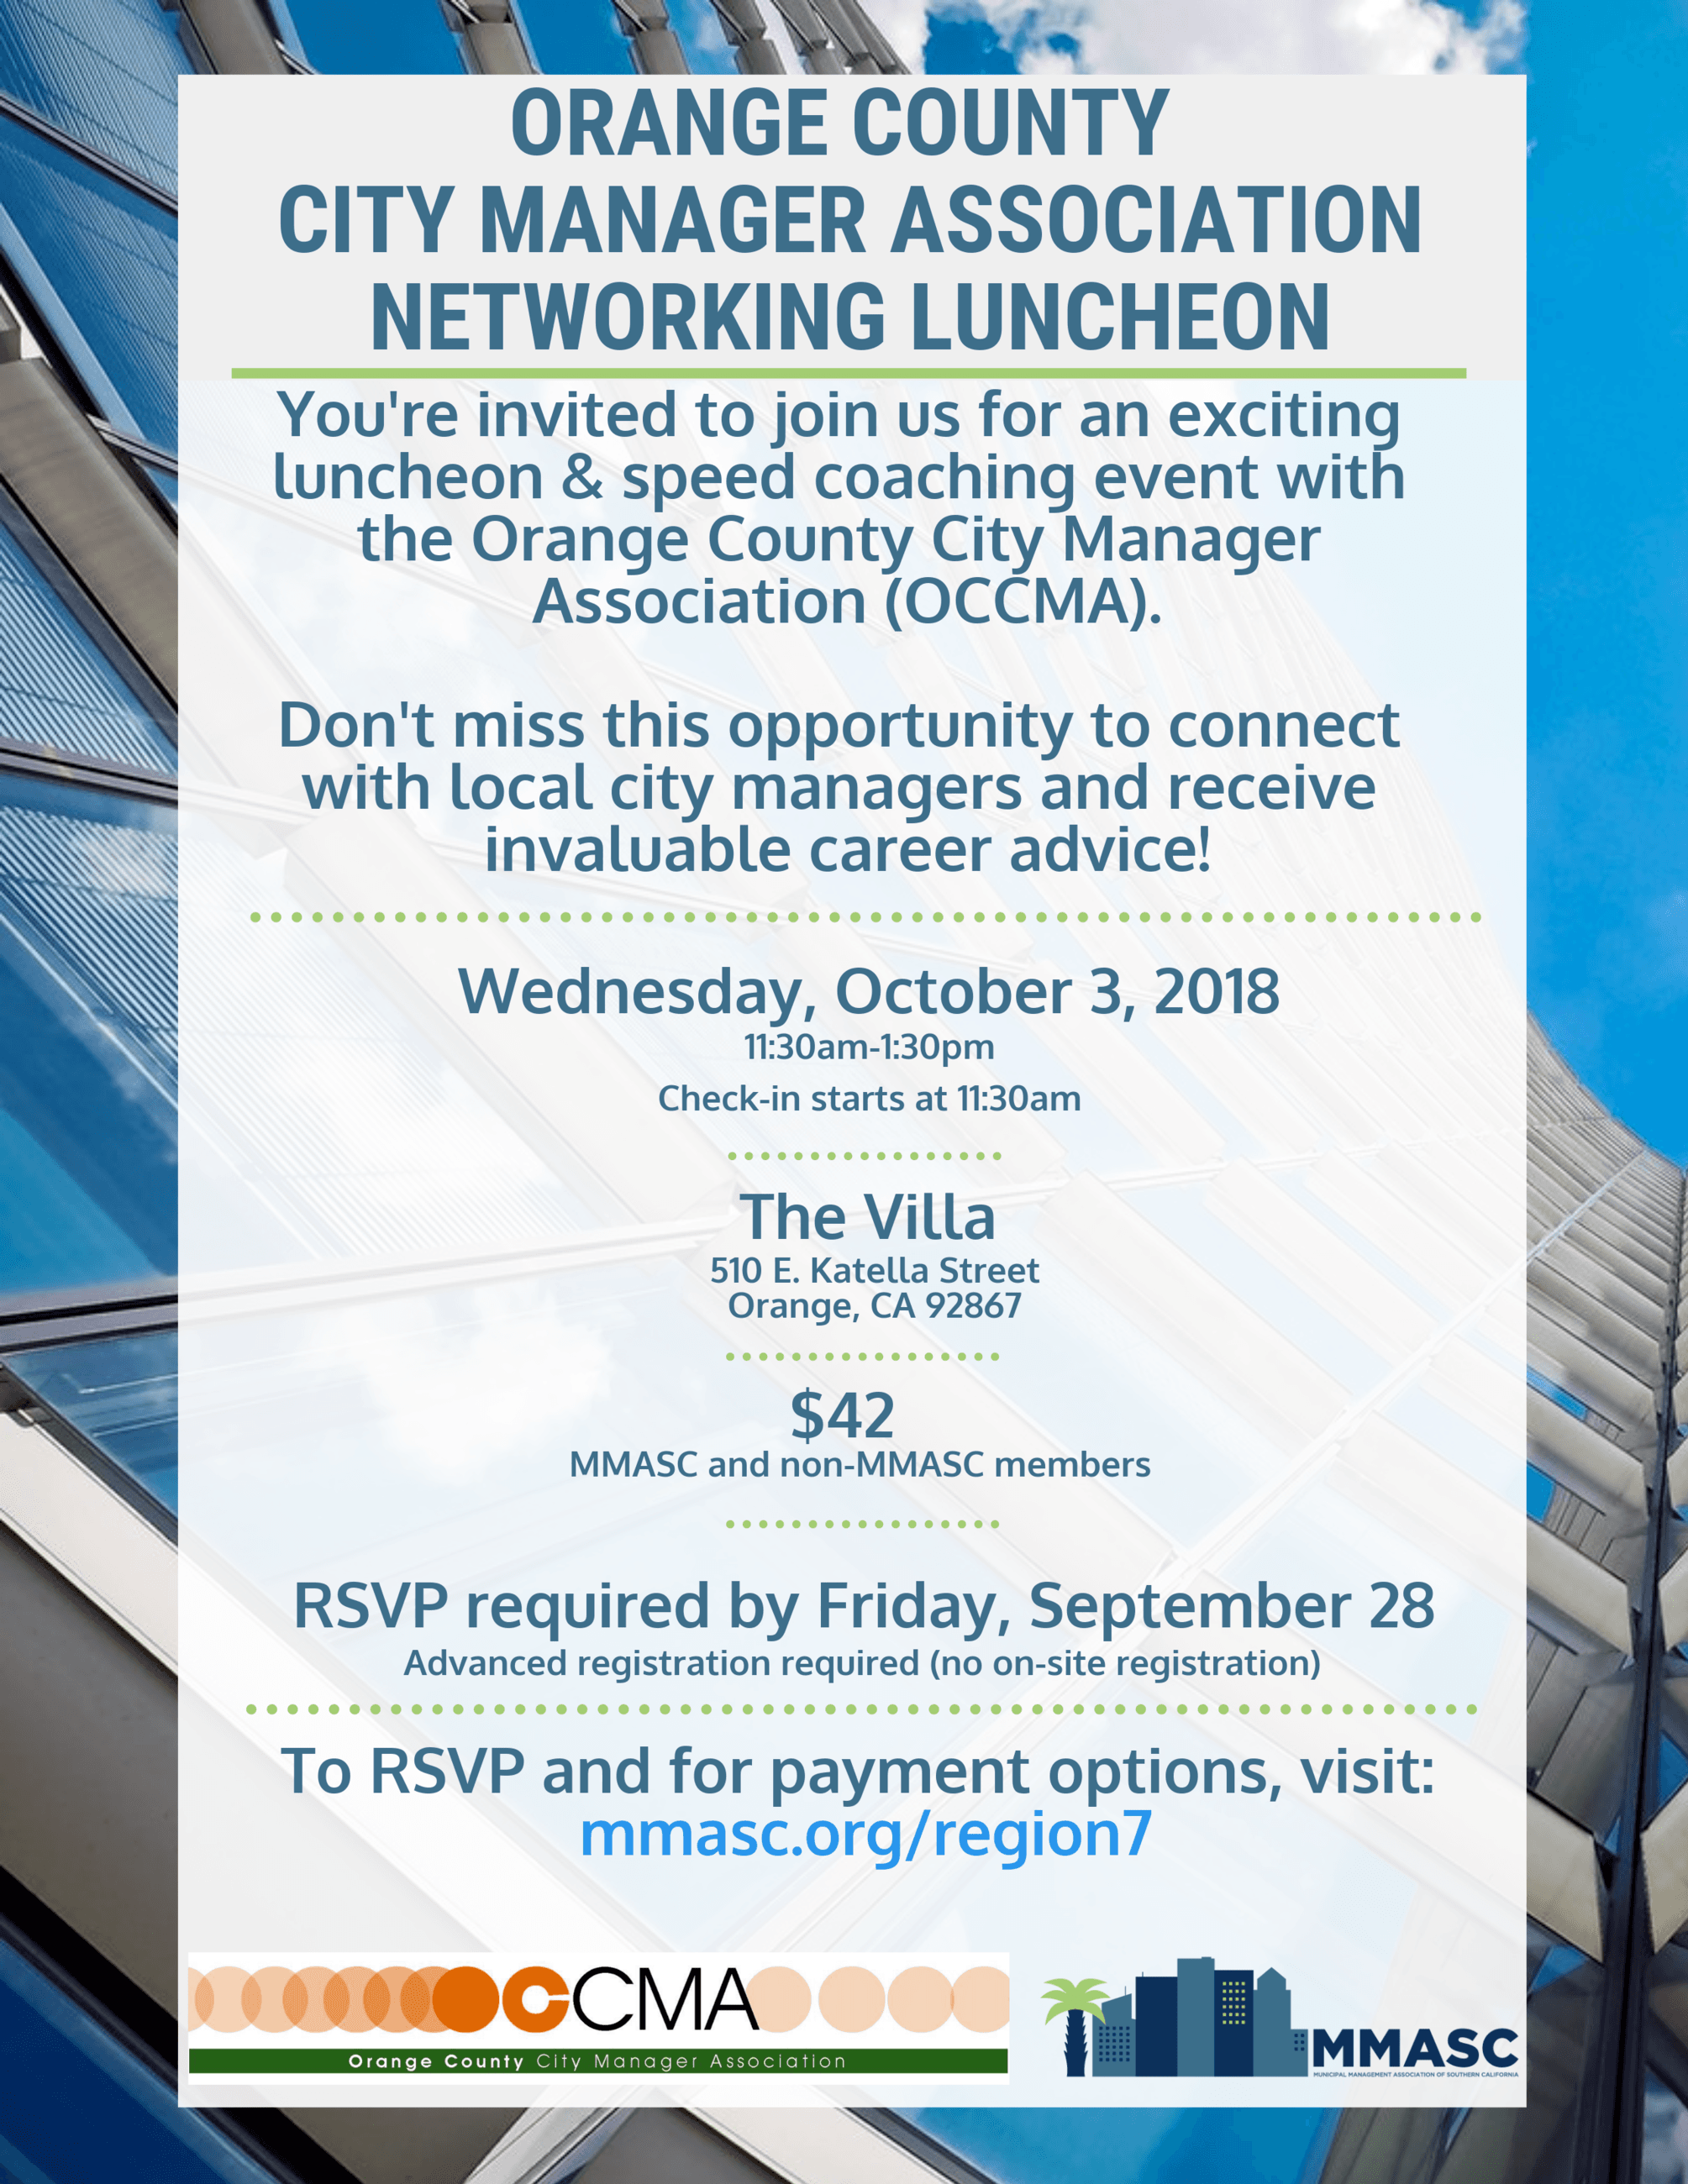 2018 OCCMA networking event